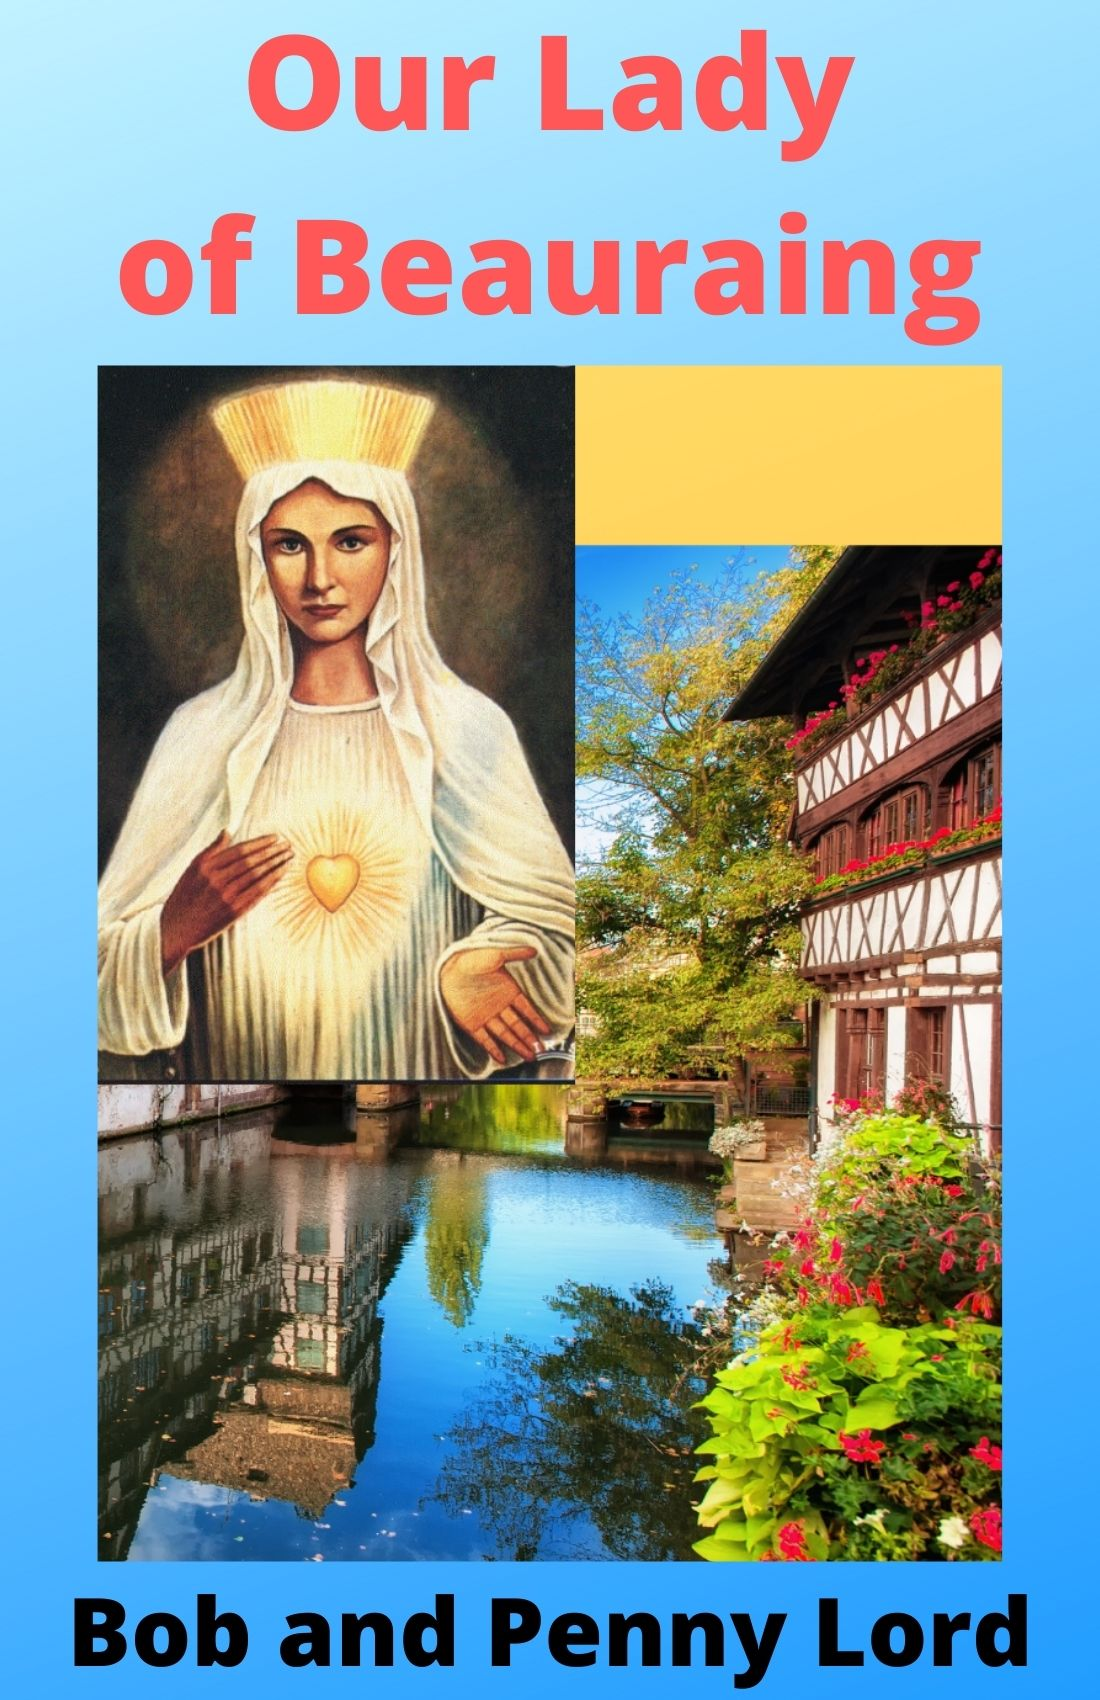 Our Lady of Beauraing DVD - Bob and Penny Lord